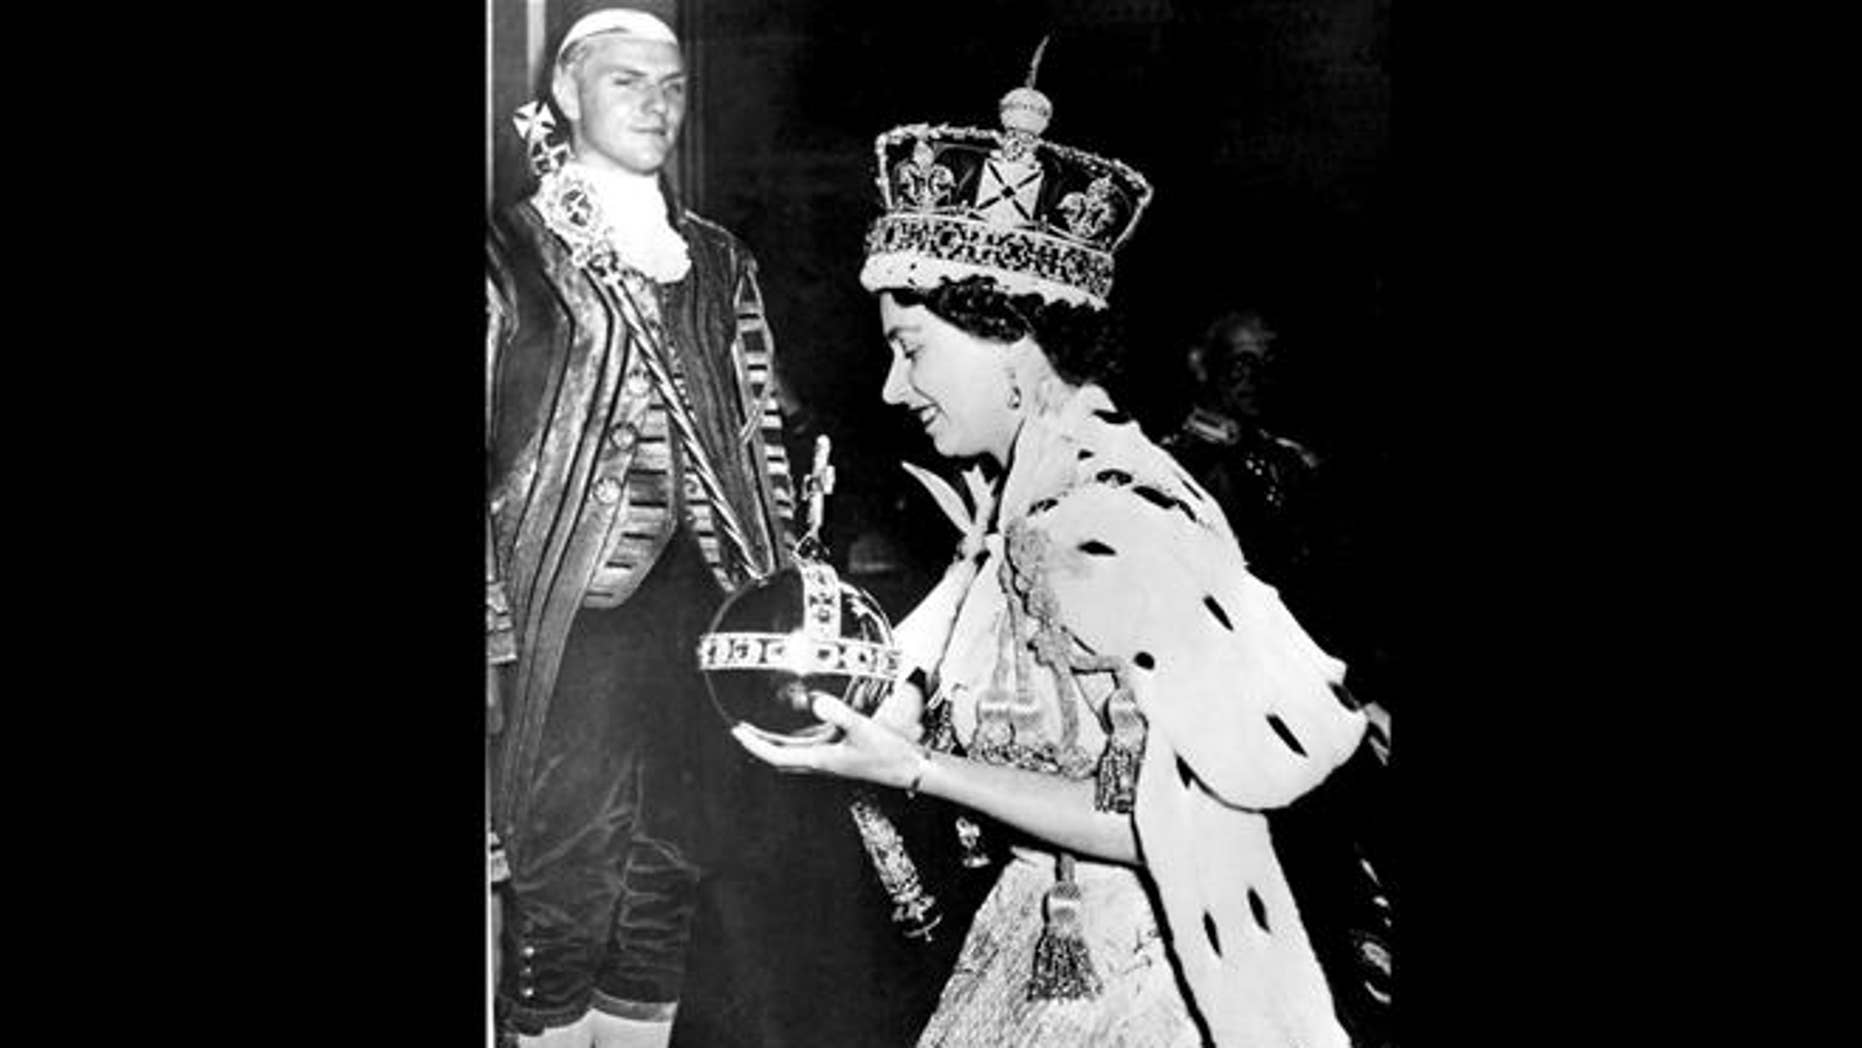 In this 1953 file photo, Britain's Queen Elizabeth II, wearing the bejeweled Imperial State Crown and carrying the Orb and Scepter with Cross, leaves Westminster Abbey in London at the end of her coronation ceremony.